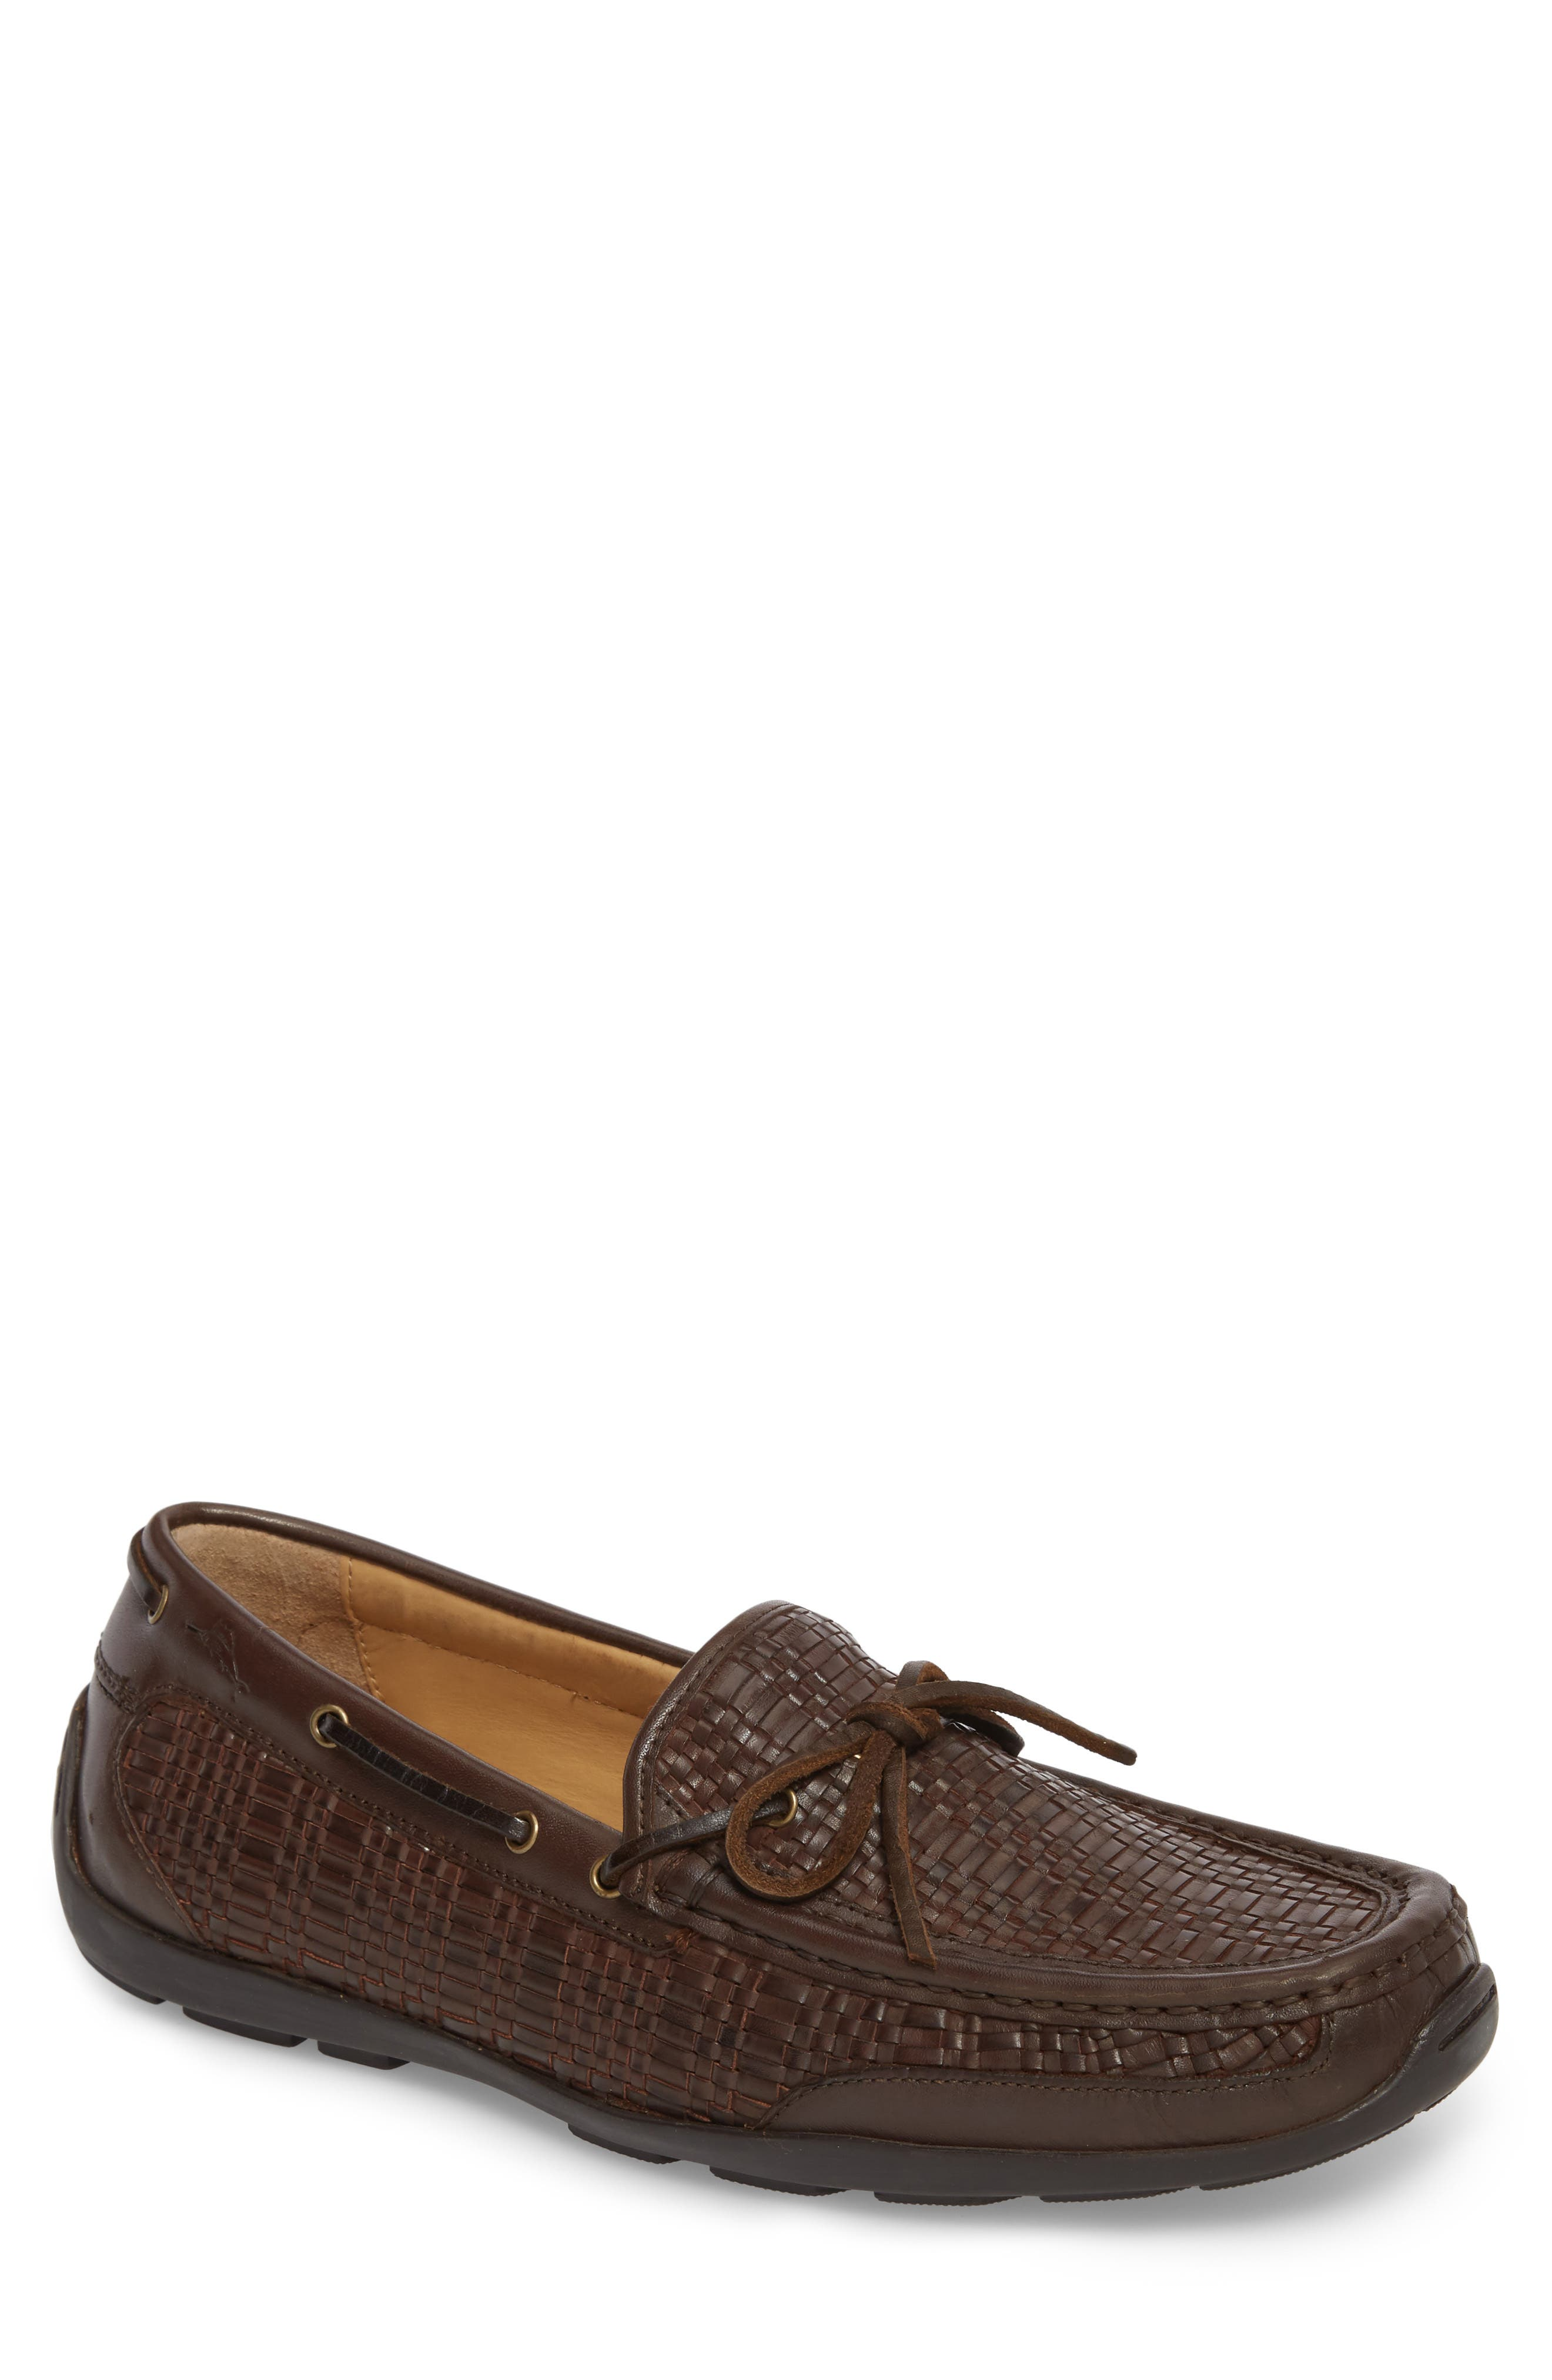 Tangier Driving Shoe,                         Main,                         color, DARK BROWN WOVEN LEATHER